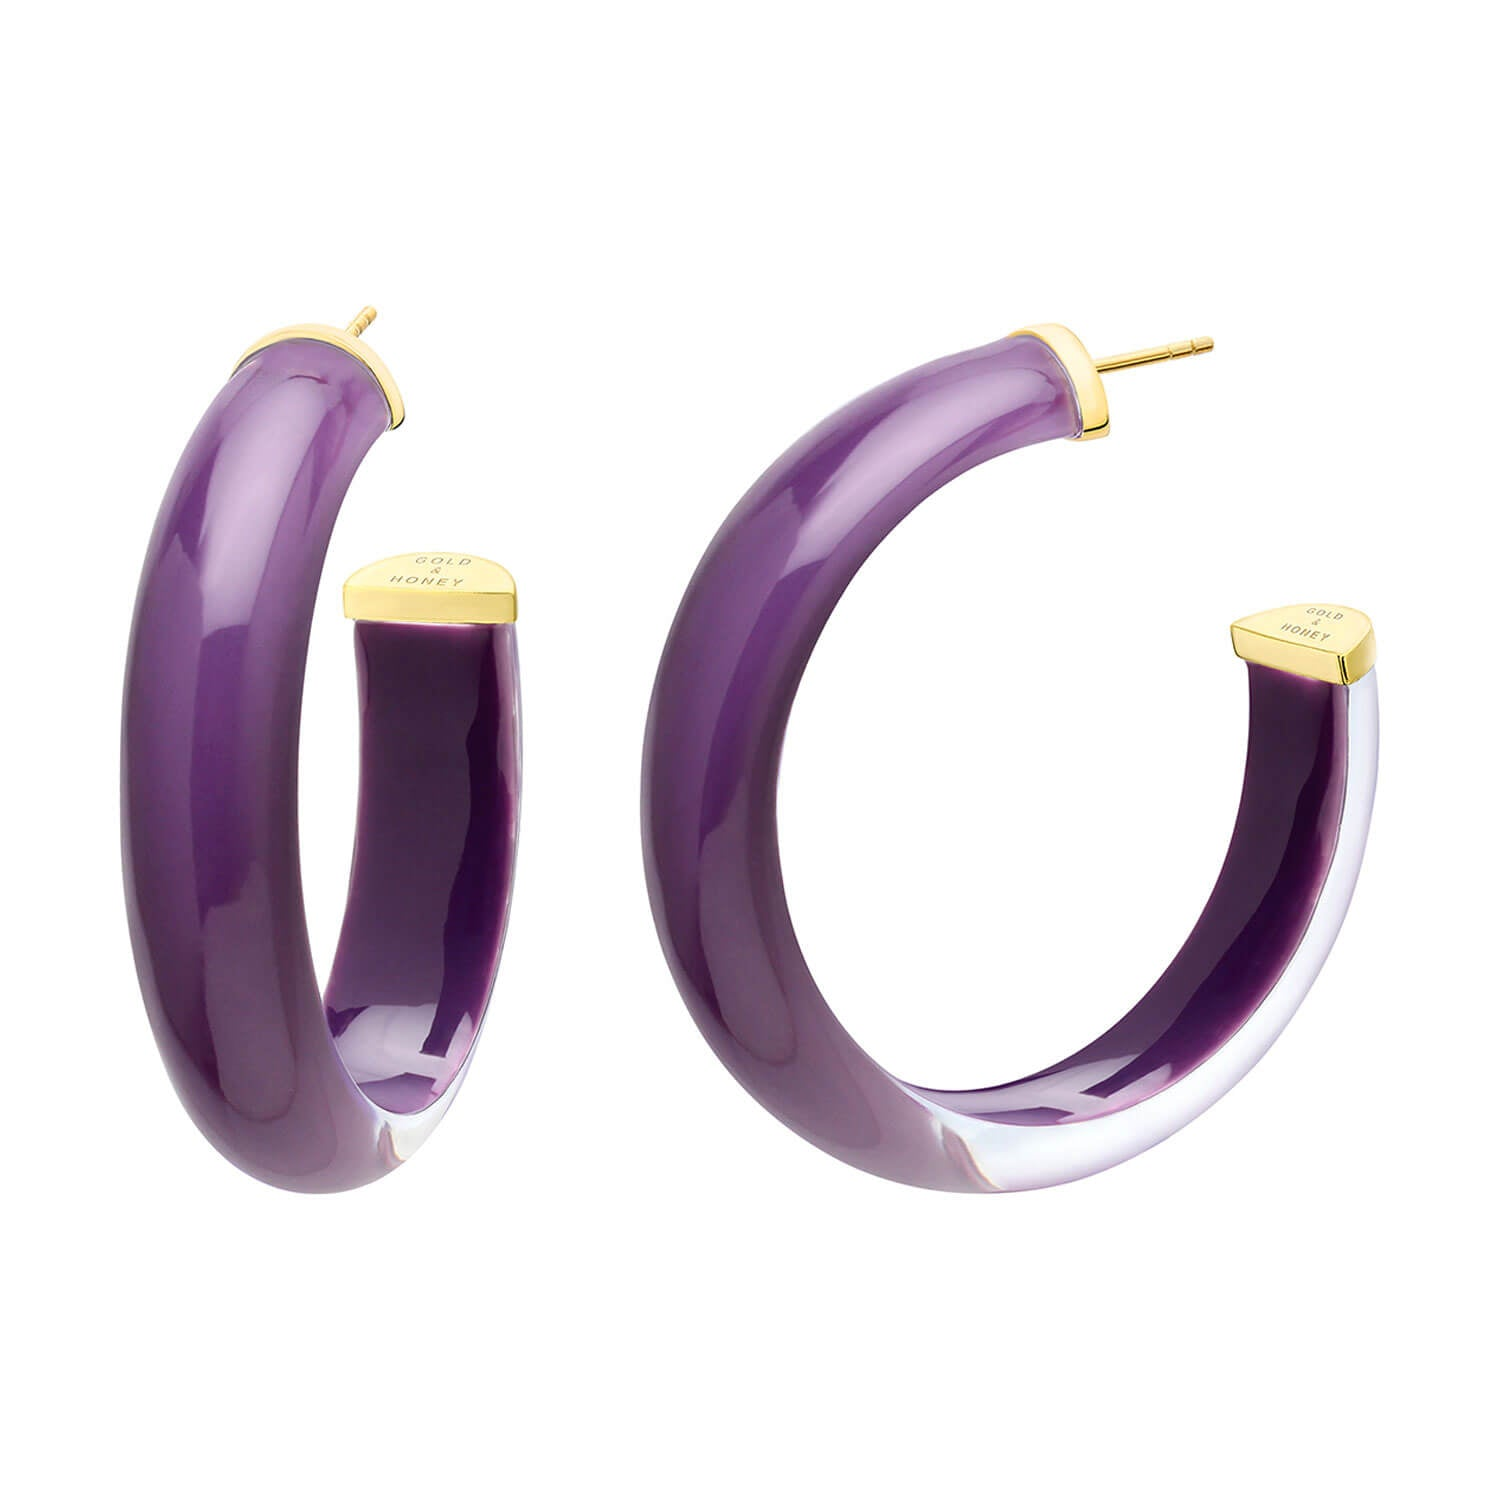 Medium Illusion Lucite Hoops in Merlot